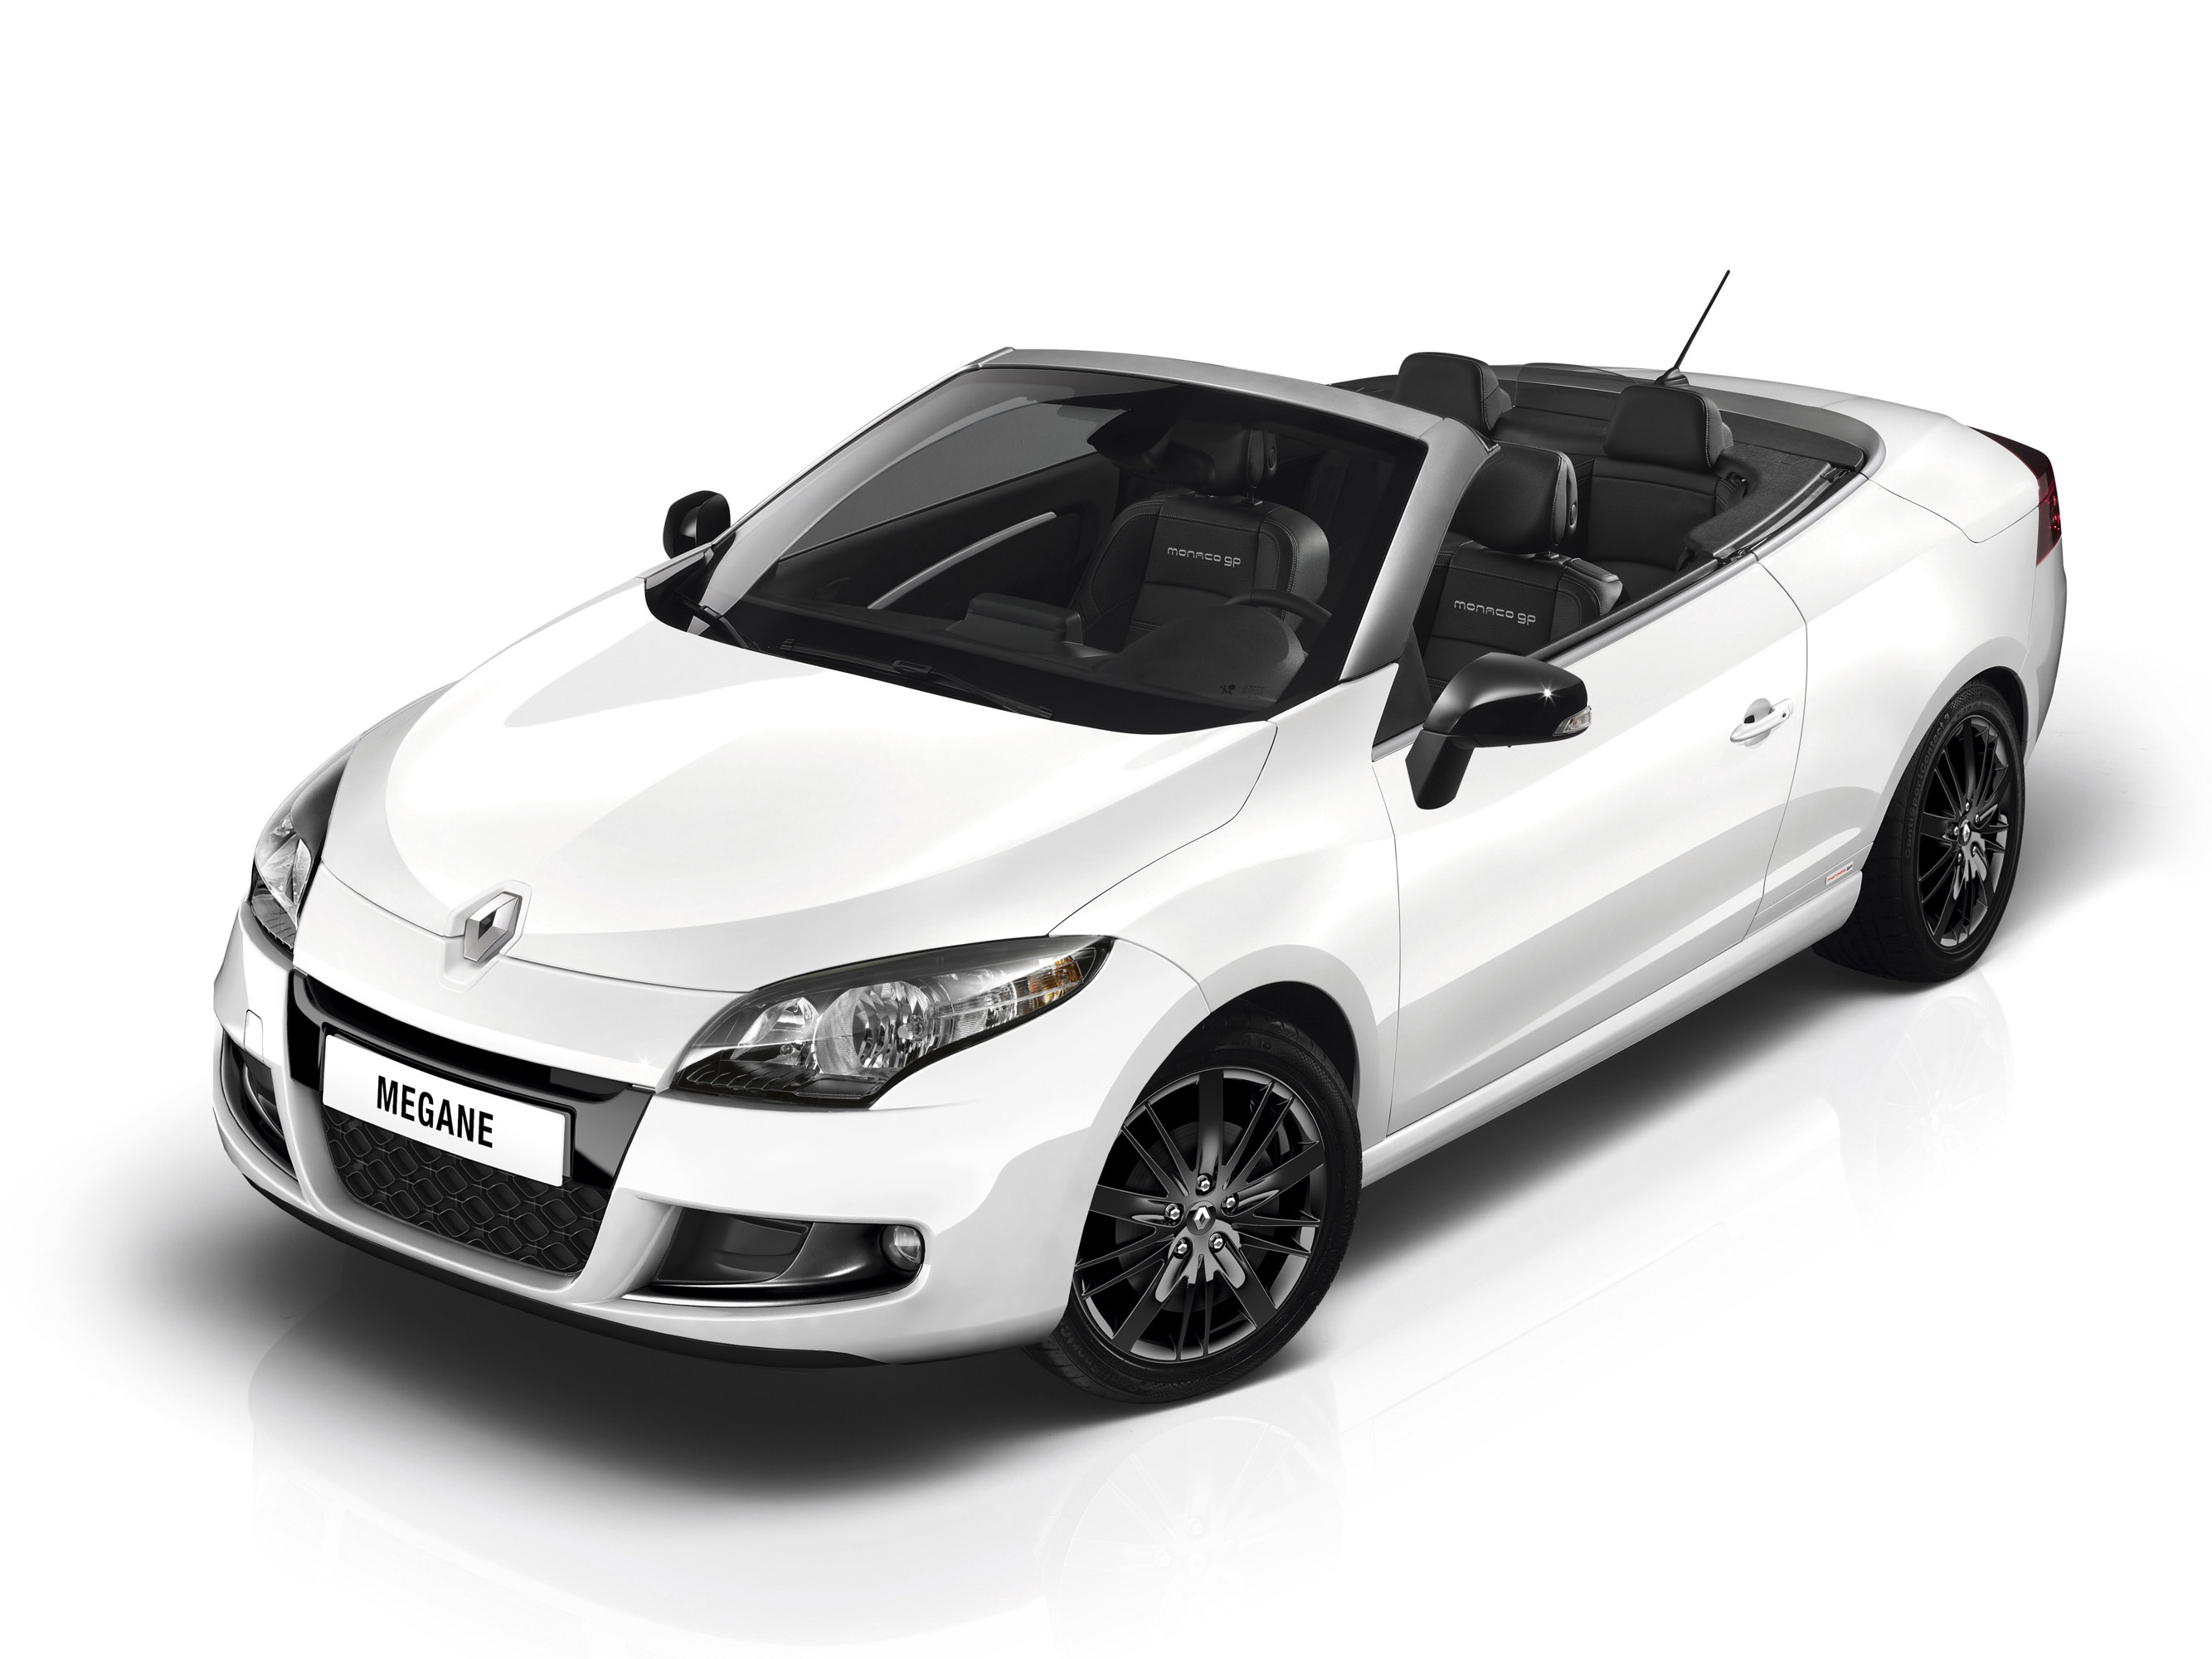 2012 renault megane monaco gp coupe cabriolet hd pictures. Black Bedroom Furniture Sets. Home Design Ideas